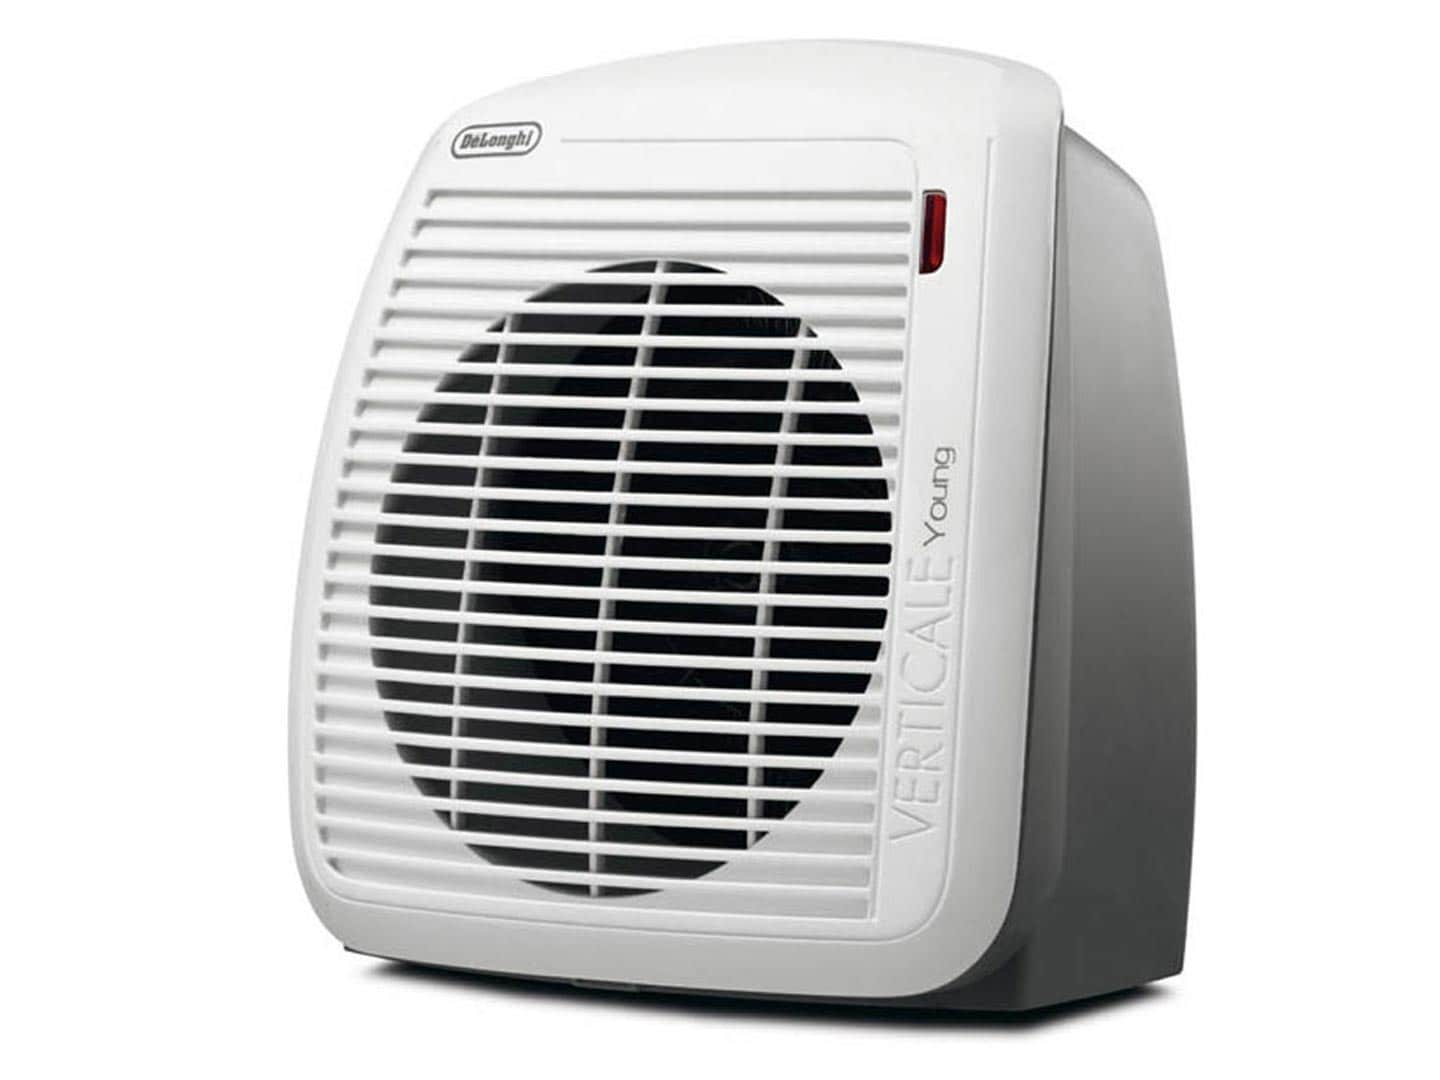 Verticale Young Hvy1030 Portable Heater